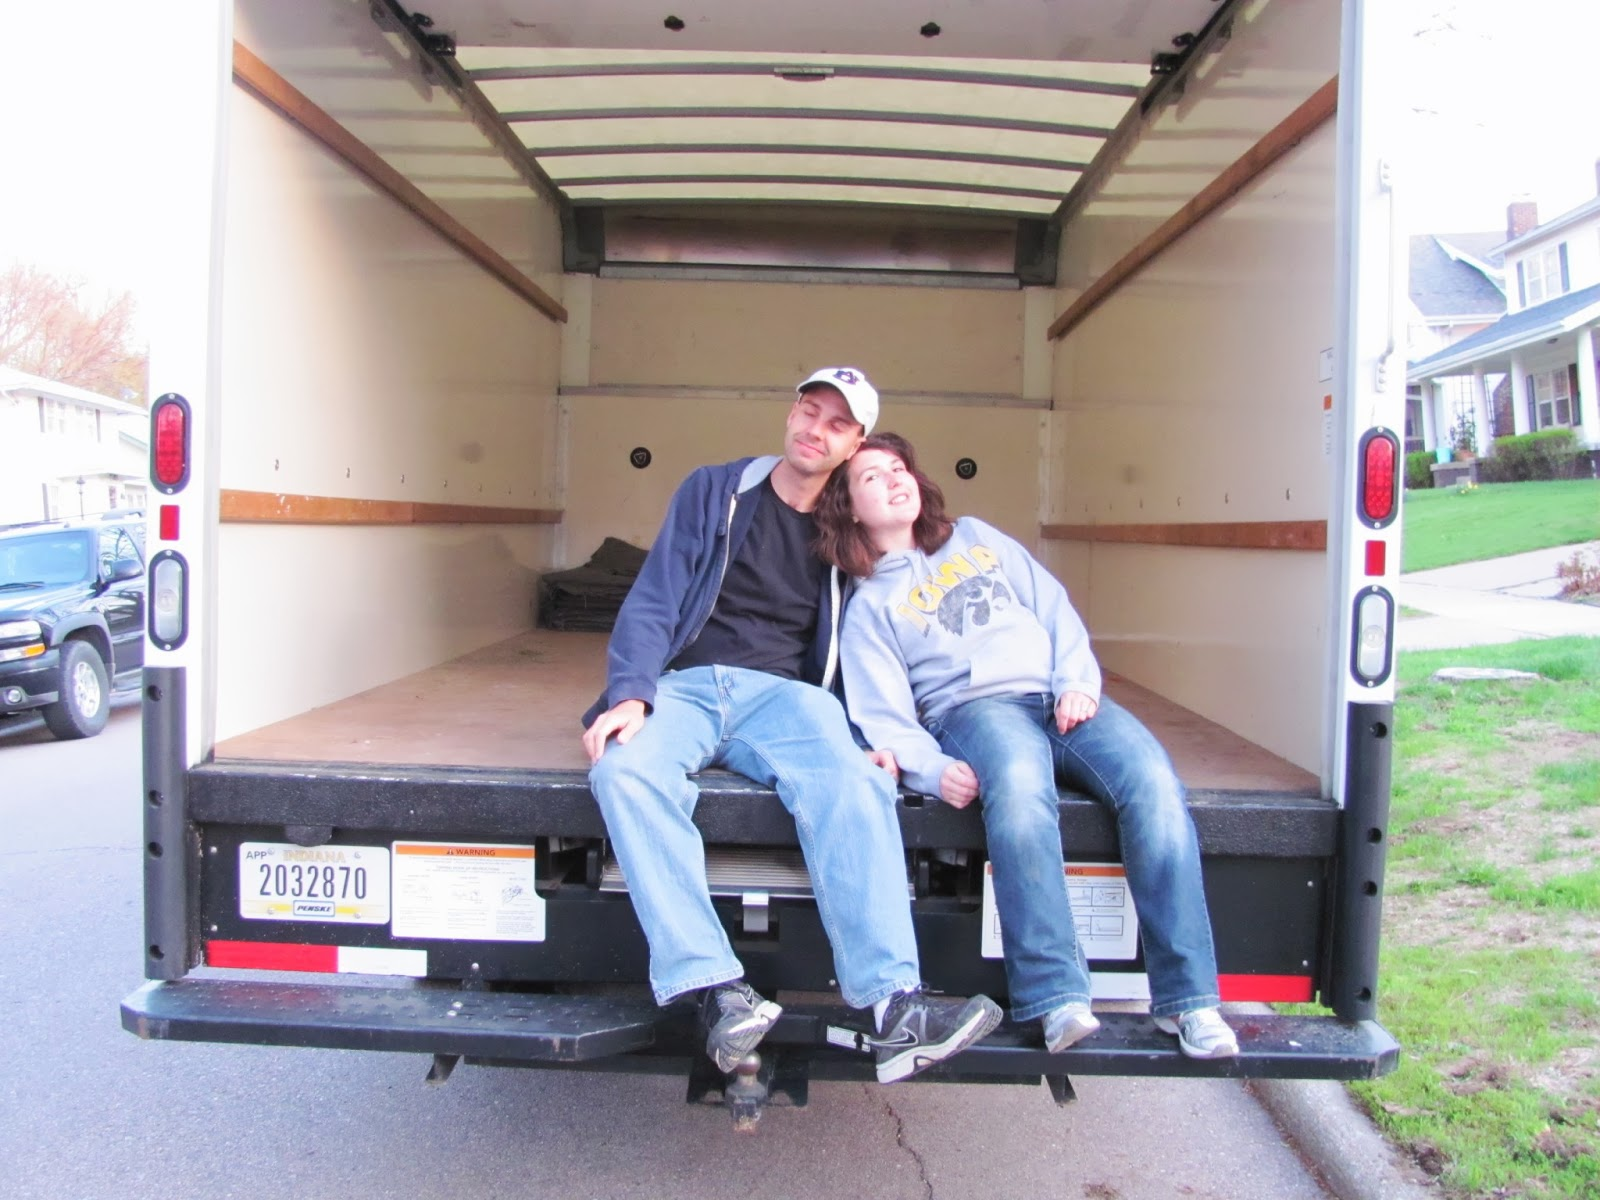 Cory and Sara relaxing in front of the empty truck after a VERY long day.